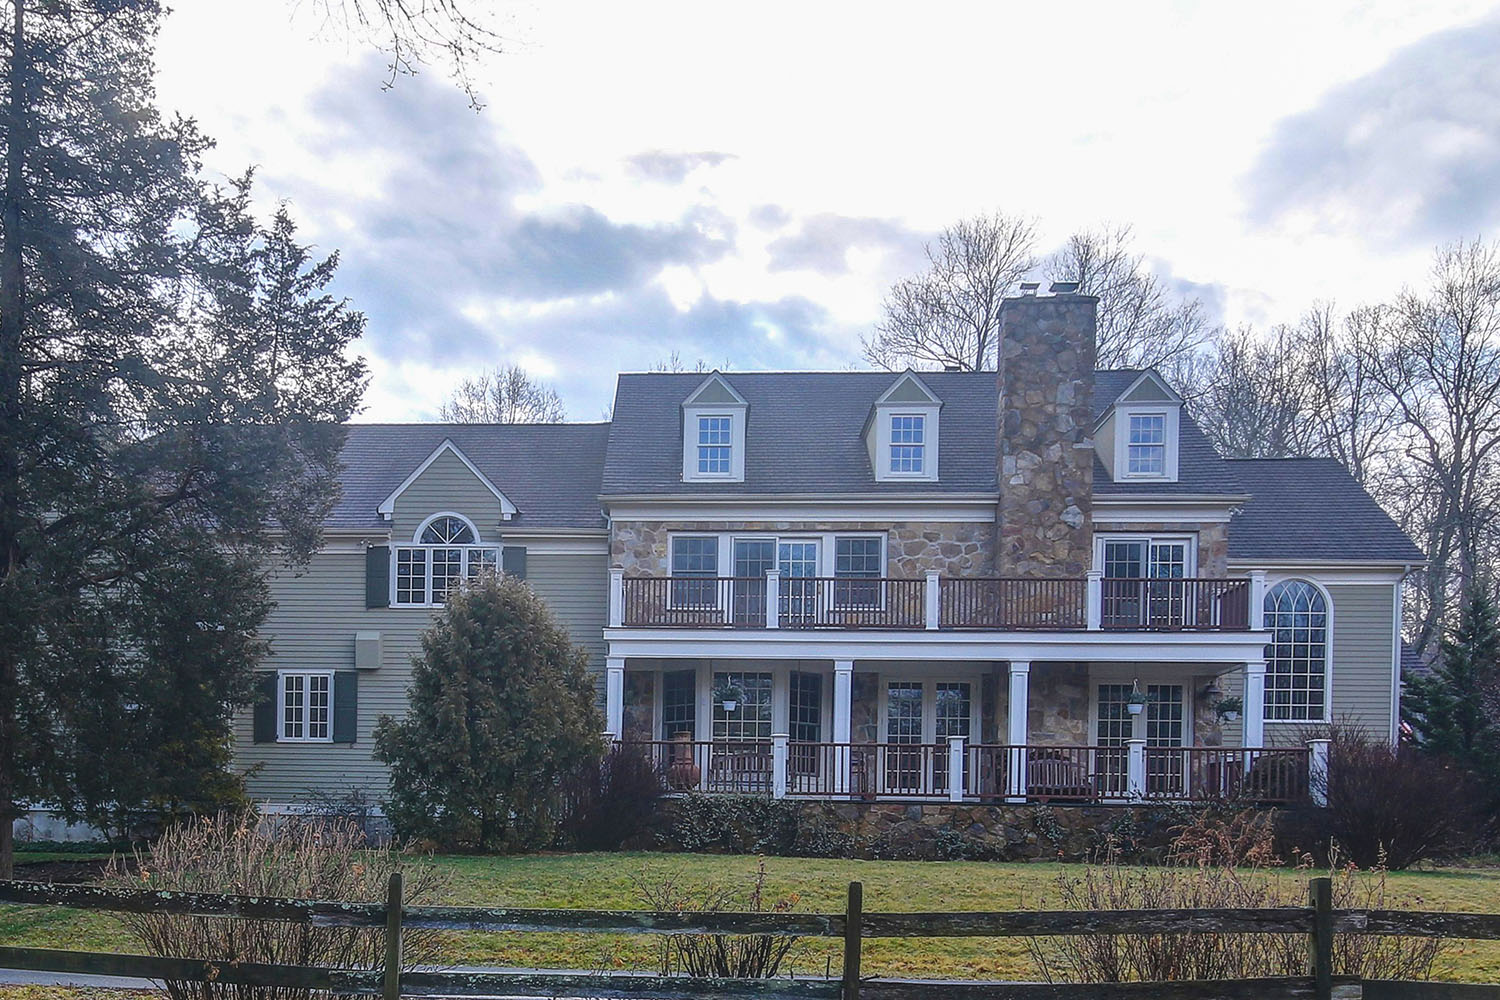 Acreage For Sale By Owner >> Summit NJ center hall colonial home for sale New Jersey Real Estate | Kim Cannon Summit NJ ...